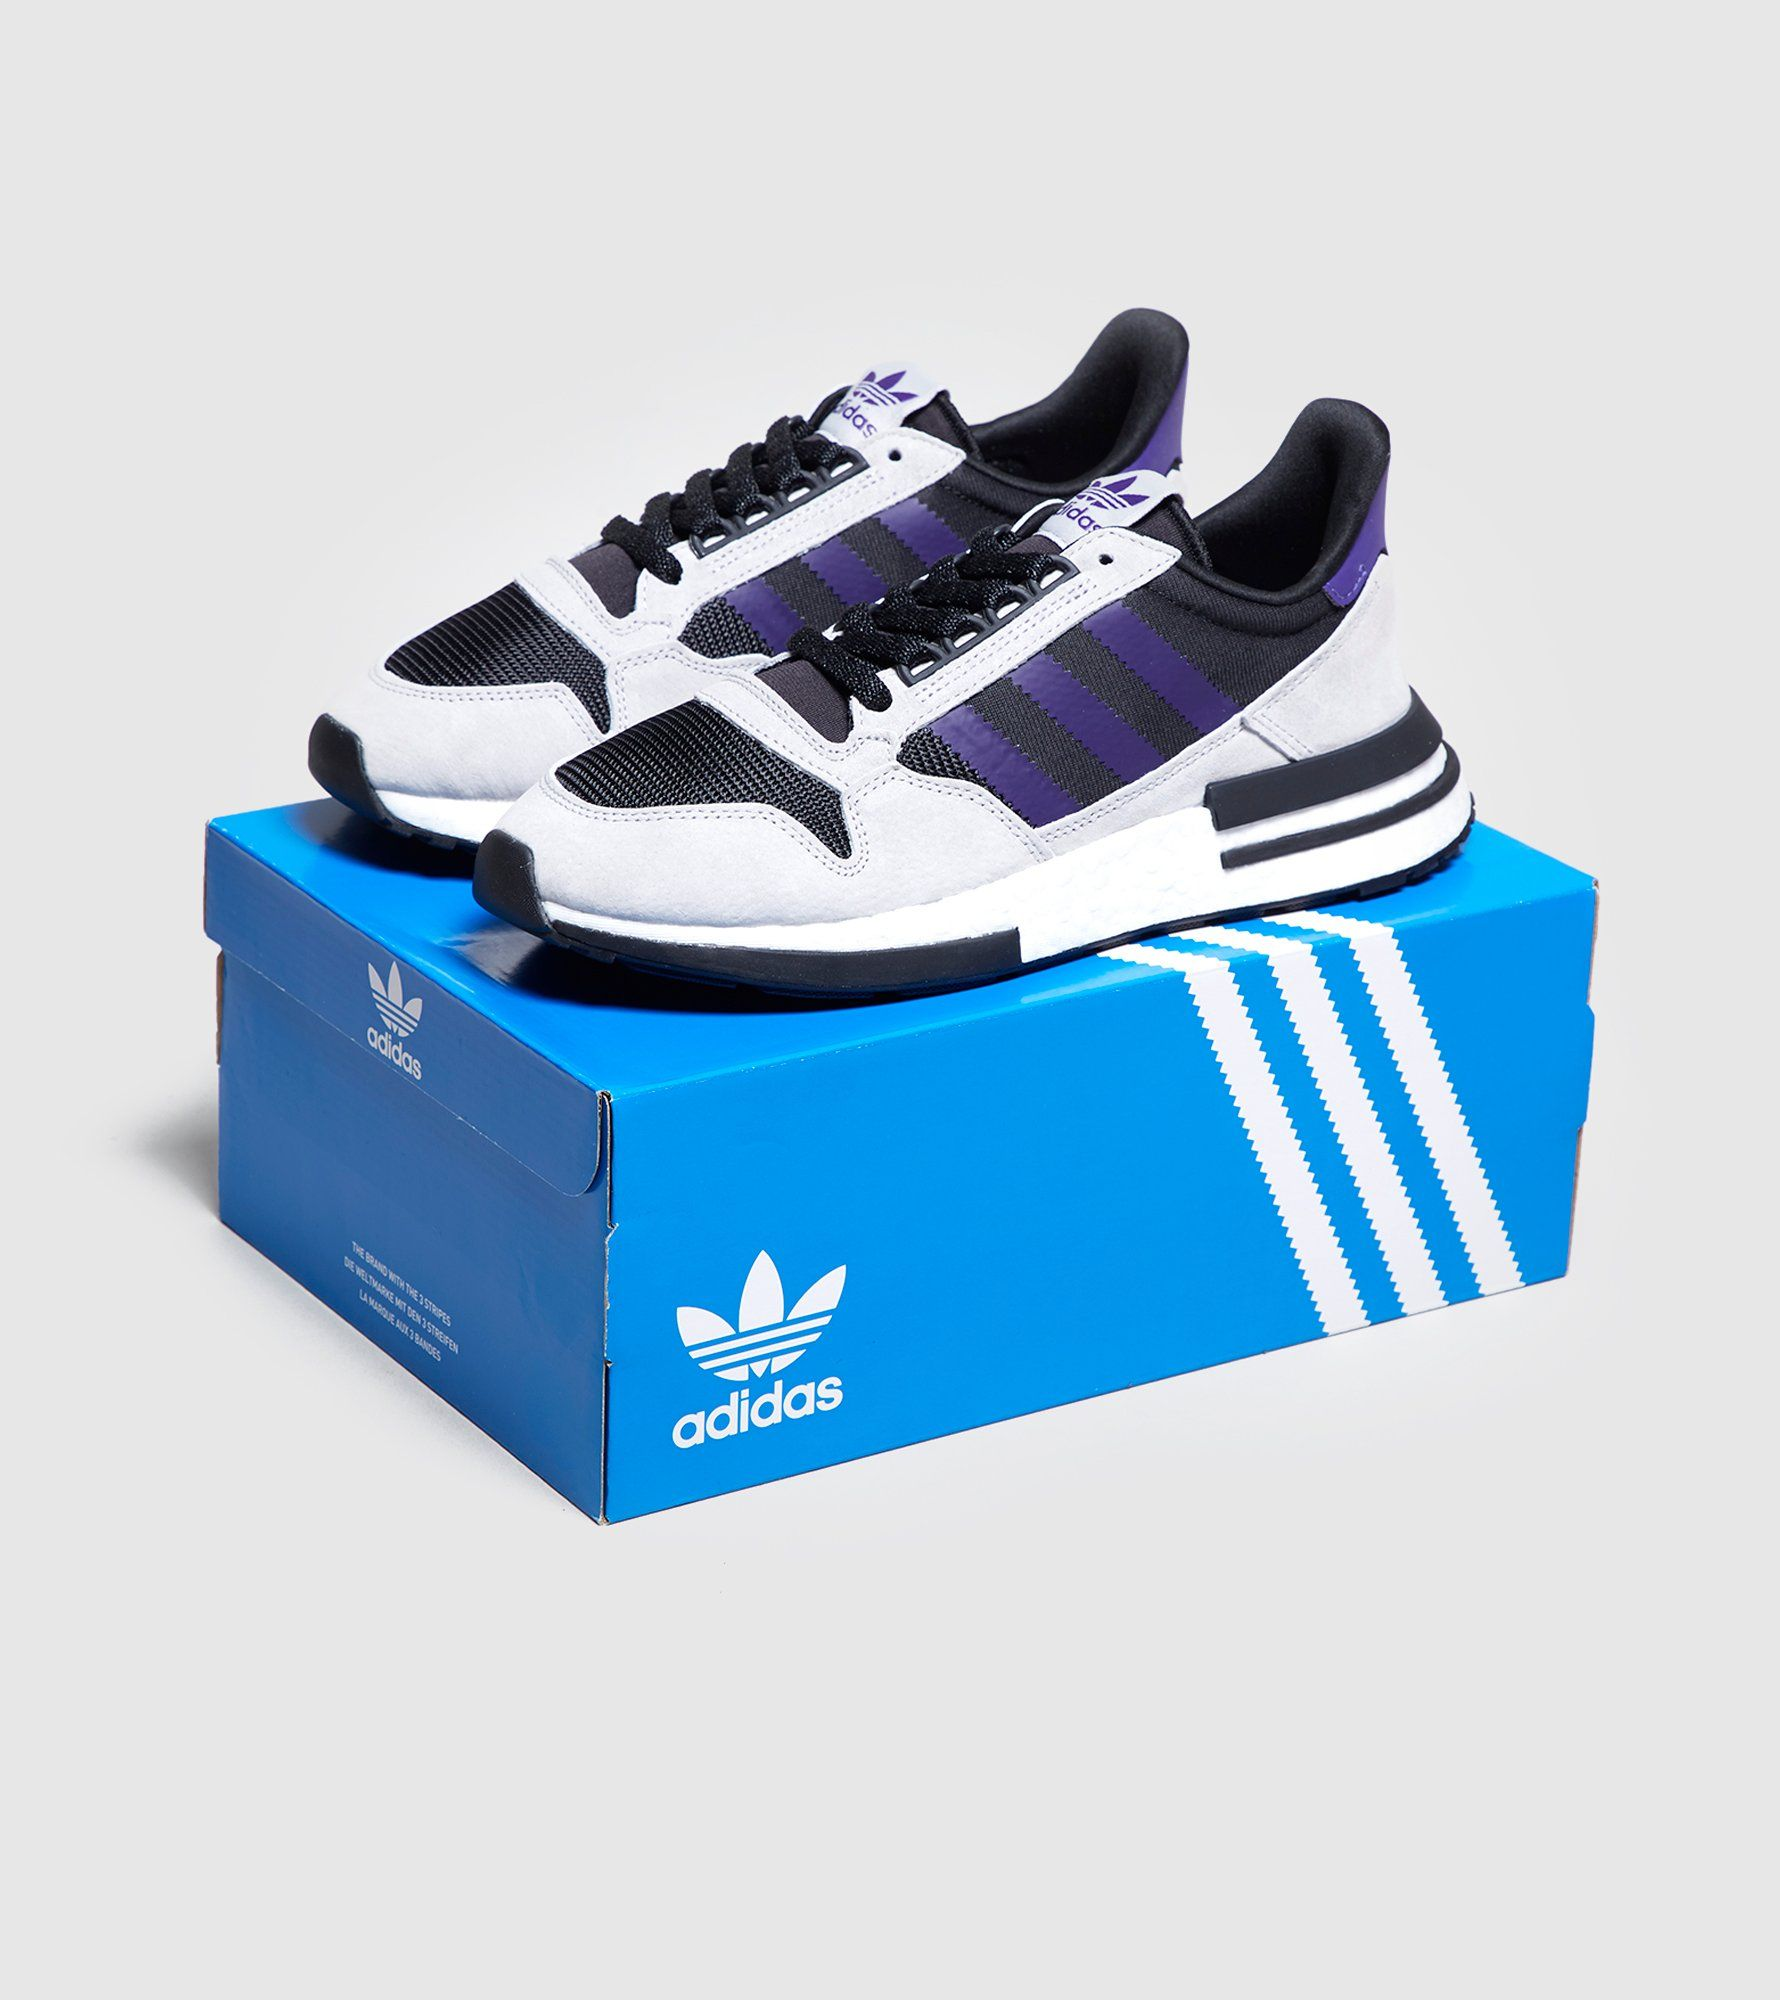 adidas Originals ZX 500 RM - exclusivité size?